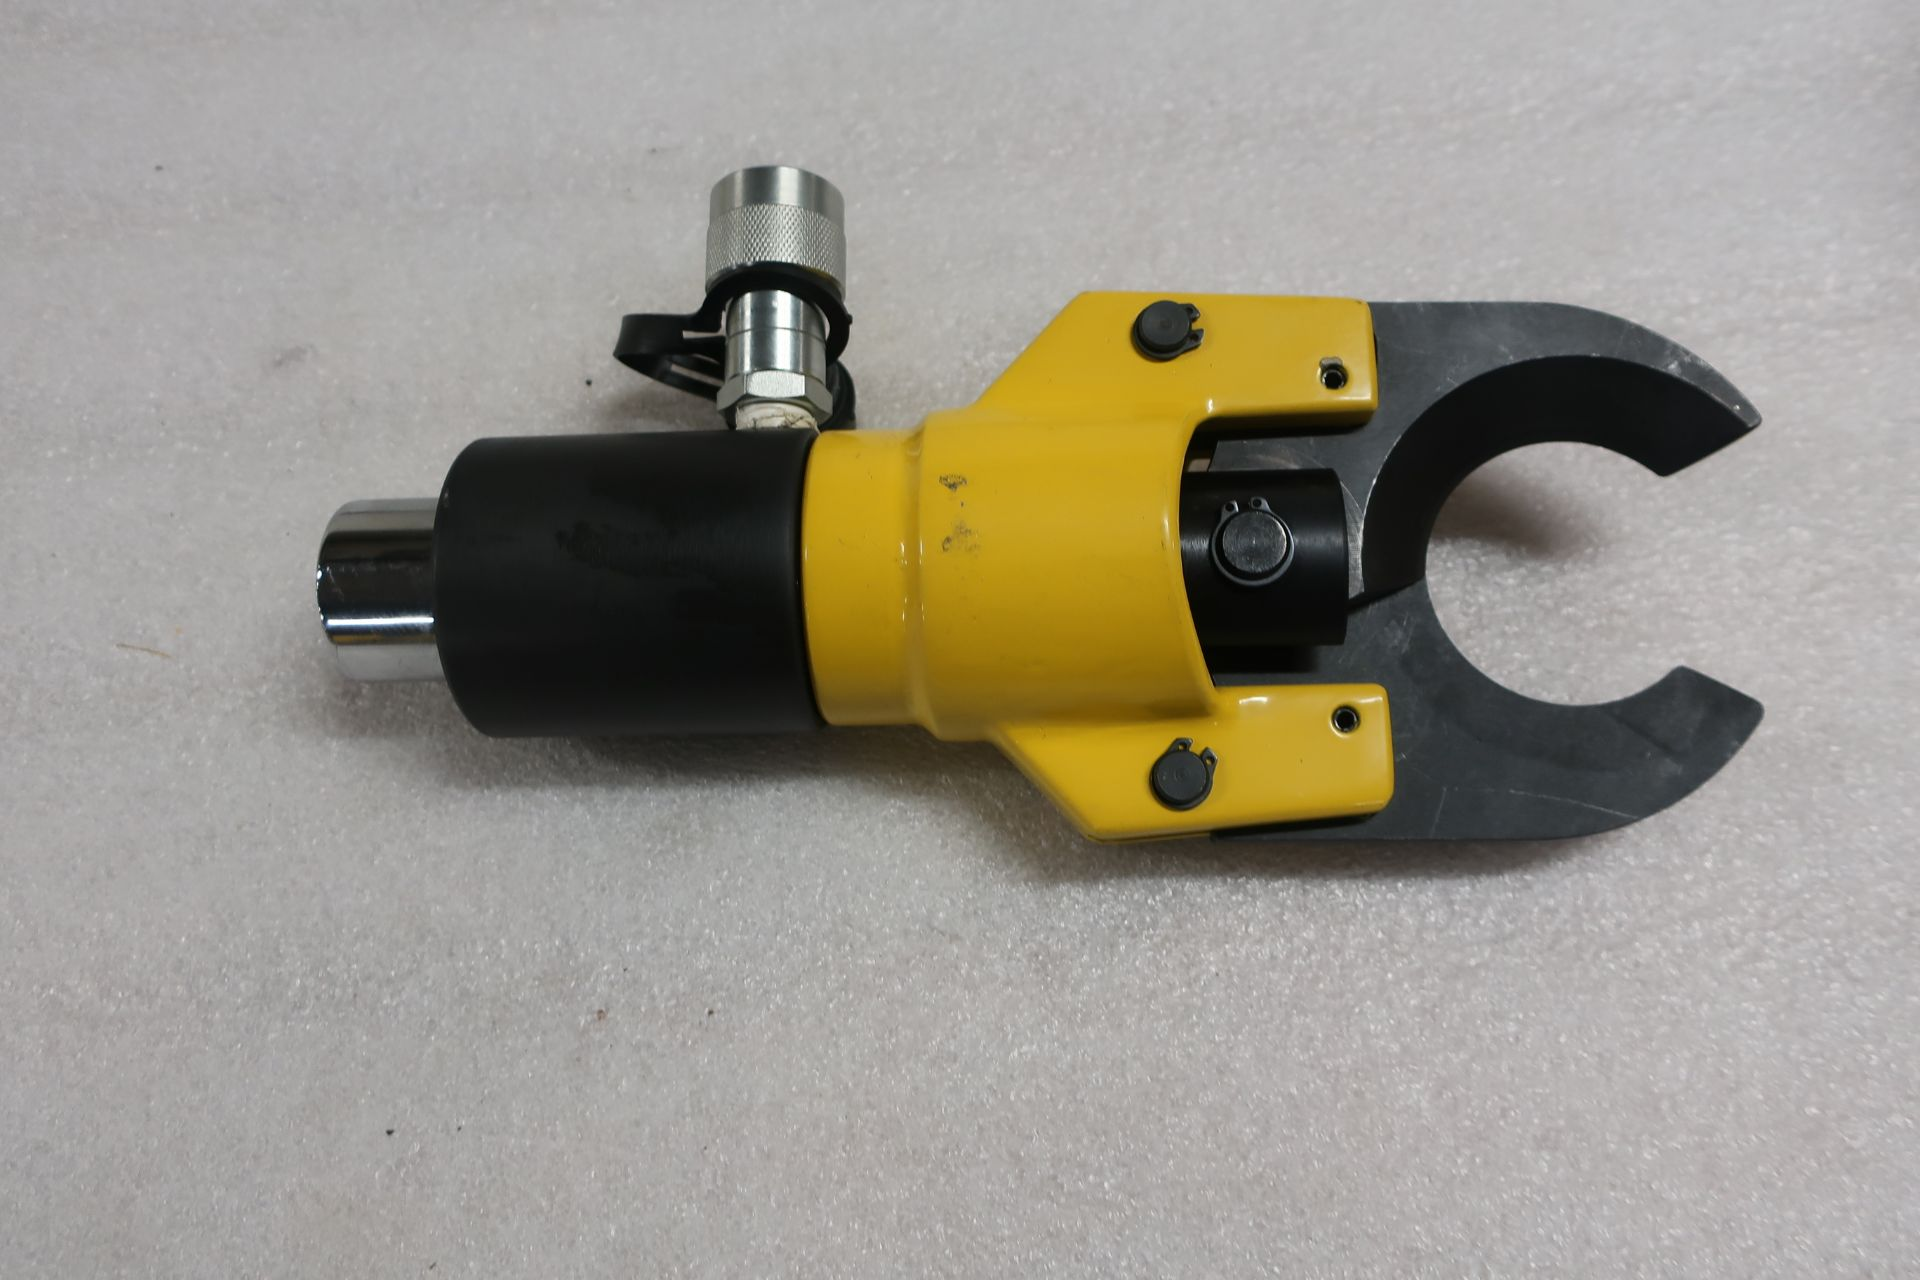 CC-50B Hydraulic Cable / Wire Cutter style - Mint and Unused in case